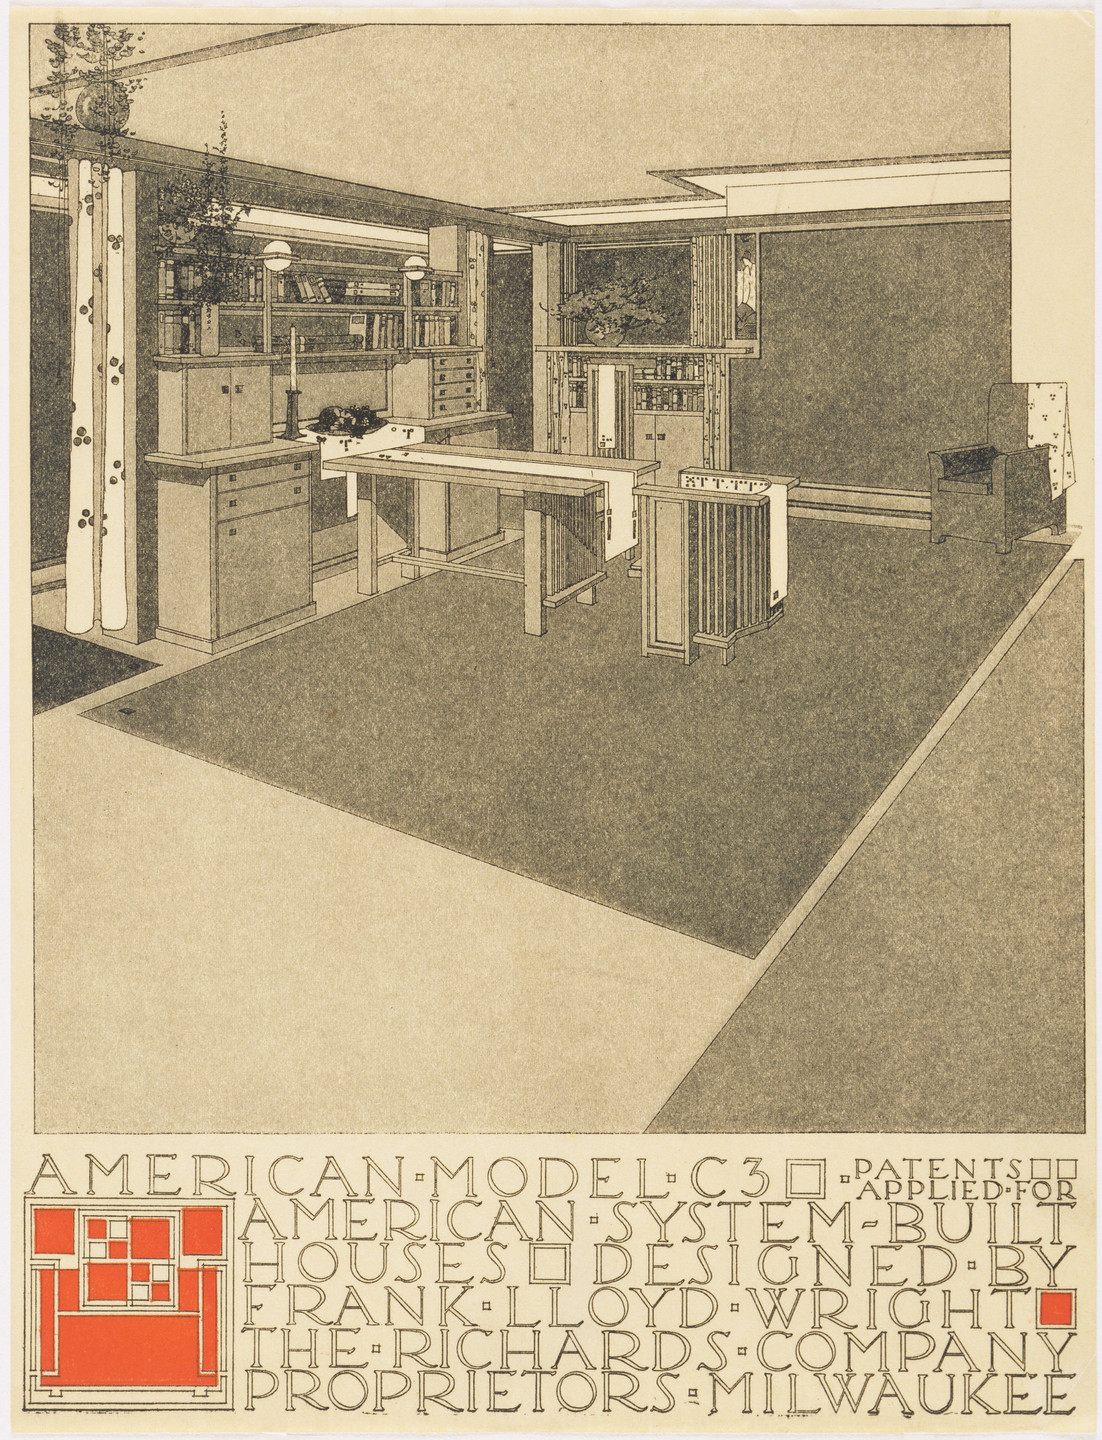 Frank Lloyd Wright. American System-Built Houses for The Richards Company project (Interior perspective of model C3). 1915–1917